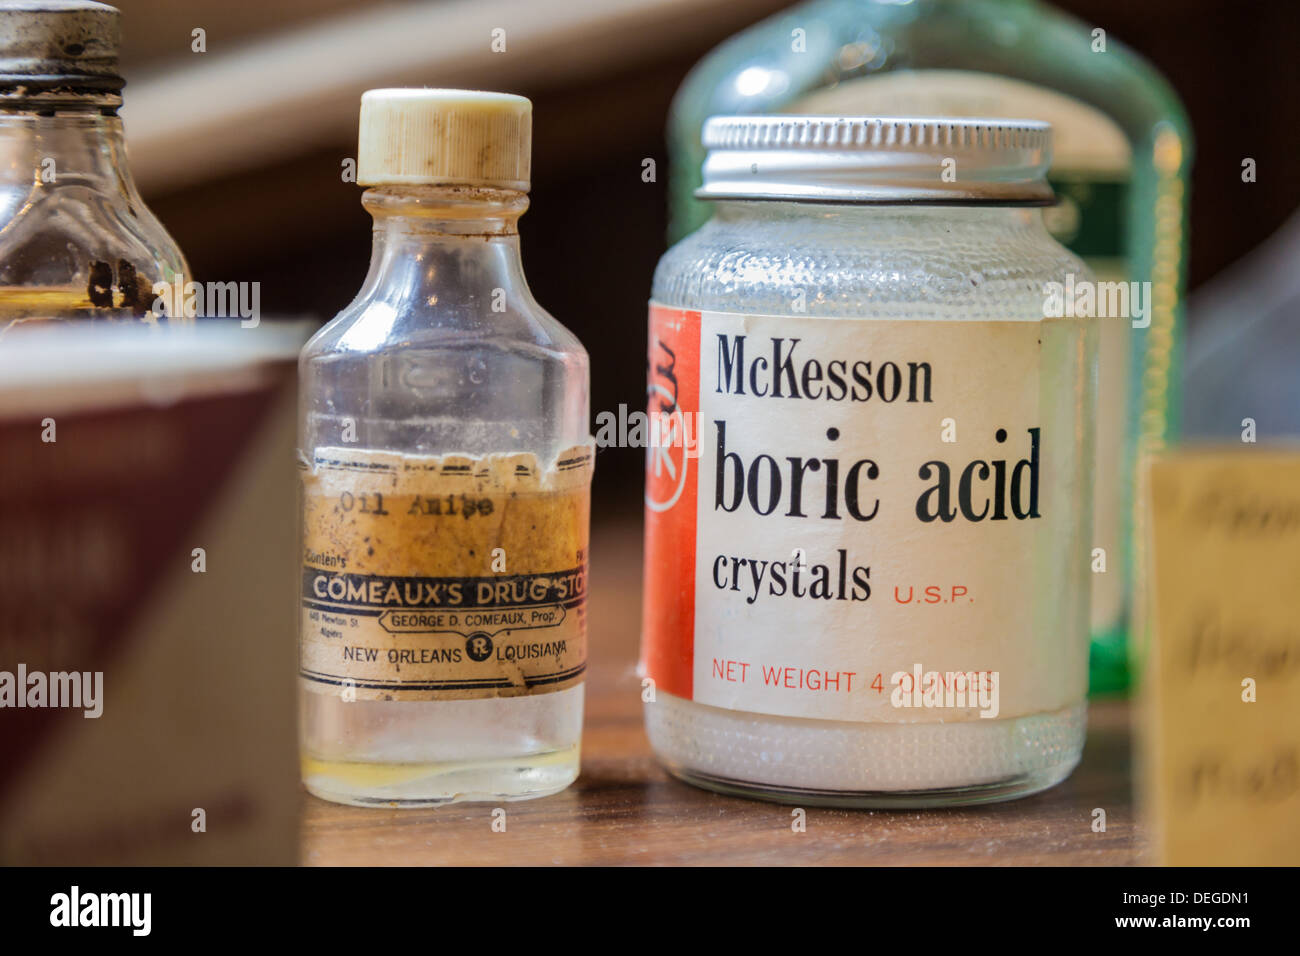 McKesson boric acid crystals and antique jars on display at gift shop in Point Clear, Alabama - Stock Image